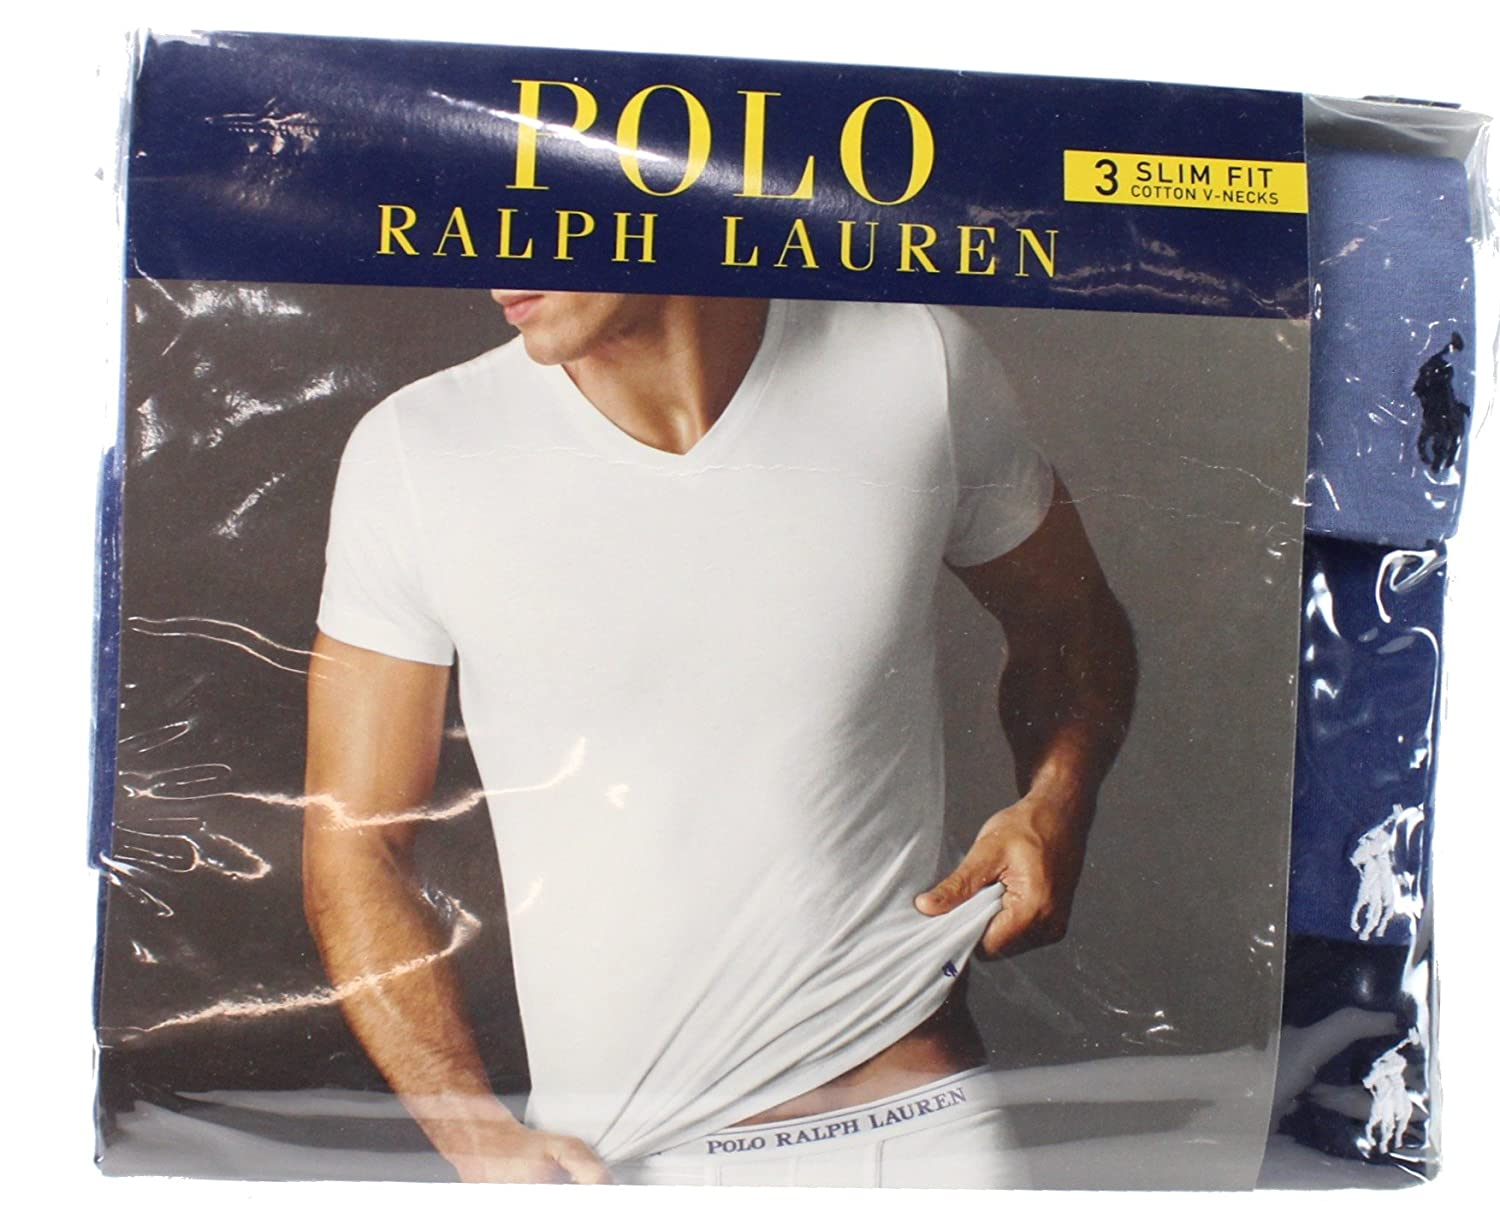 Polo Ralph Lauren Slim Fit V-Neck Undershirts 3-Pack LSVN